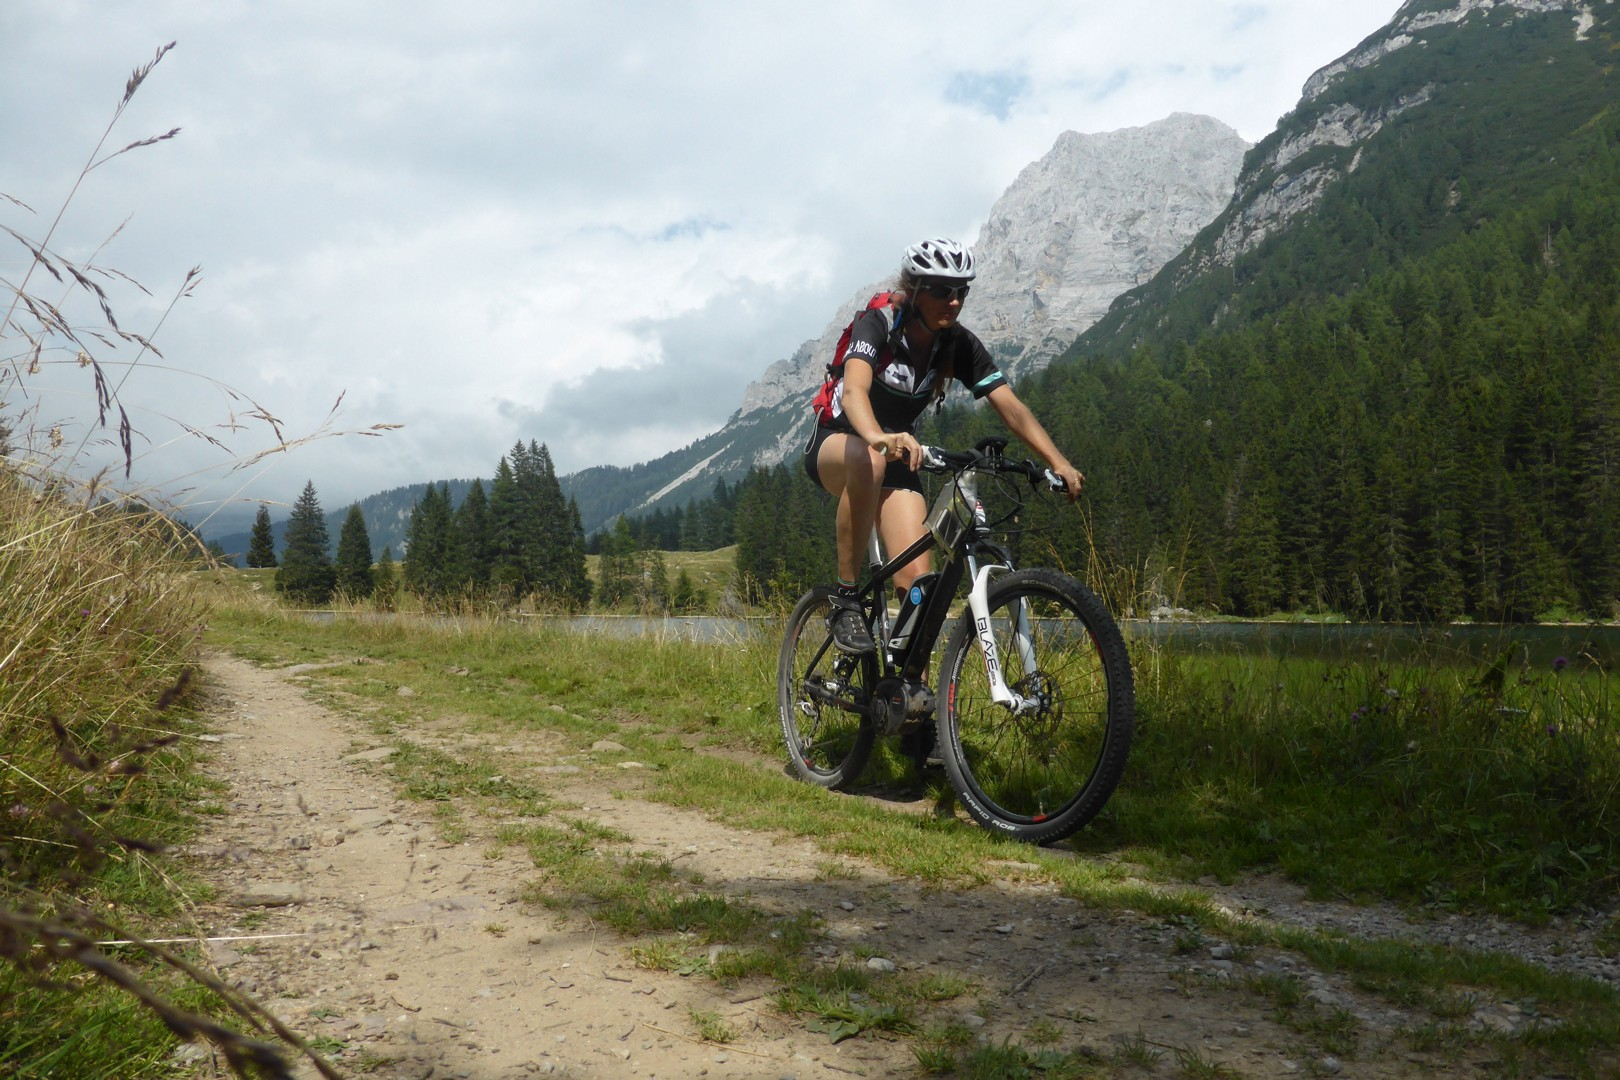 Dolomiti MTB - 1323.jpg - Italy - Dolomites of Brenta - Guided Mountain Bike Holiday - Italia Mountain Biking